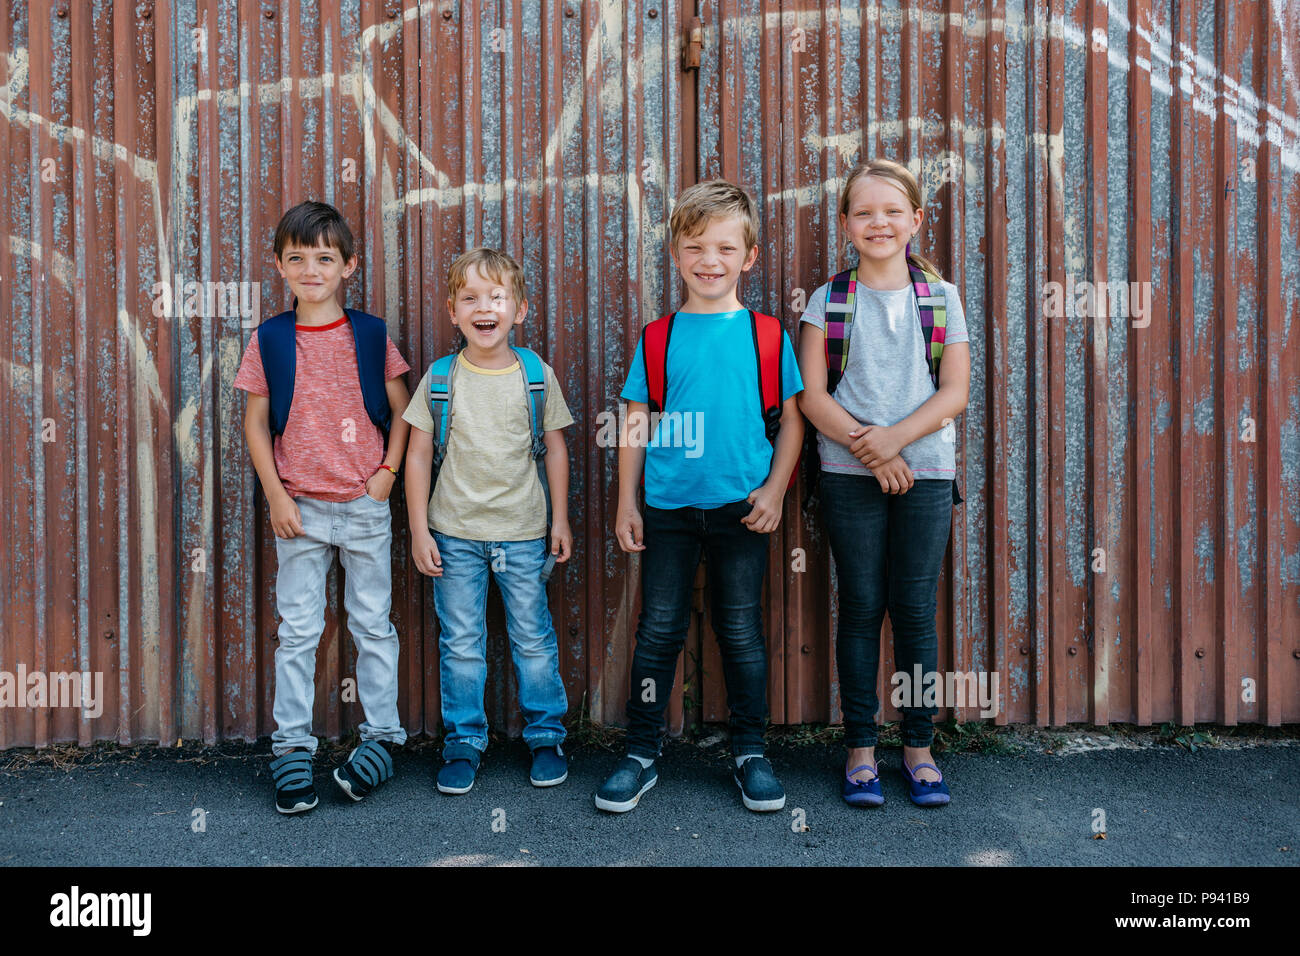 Portrait of young students having fun together on the way to school. Smiling schoolmates standing outside school. - Stock Image